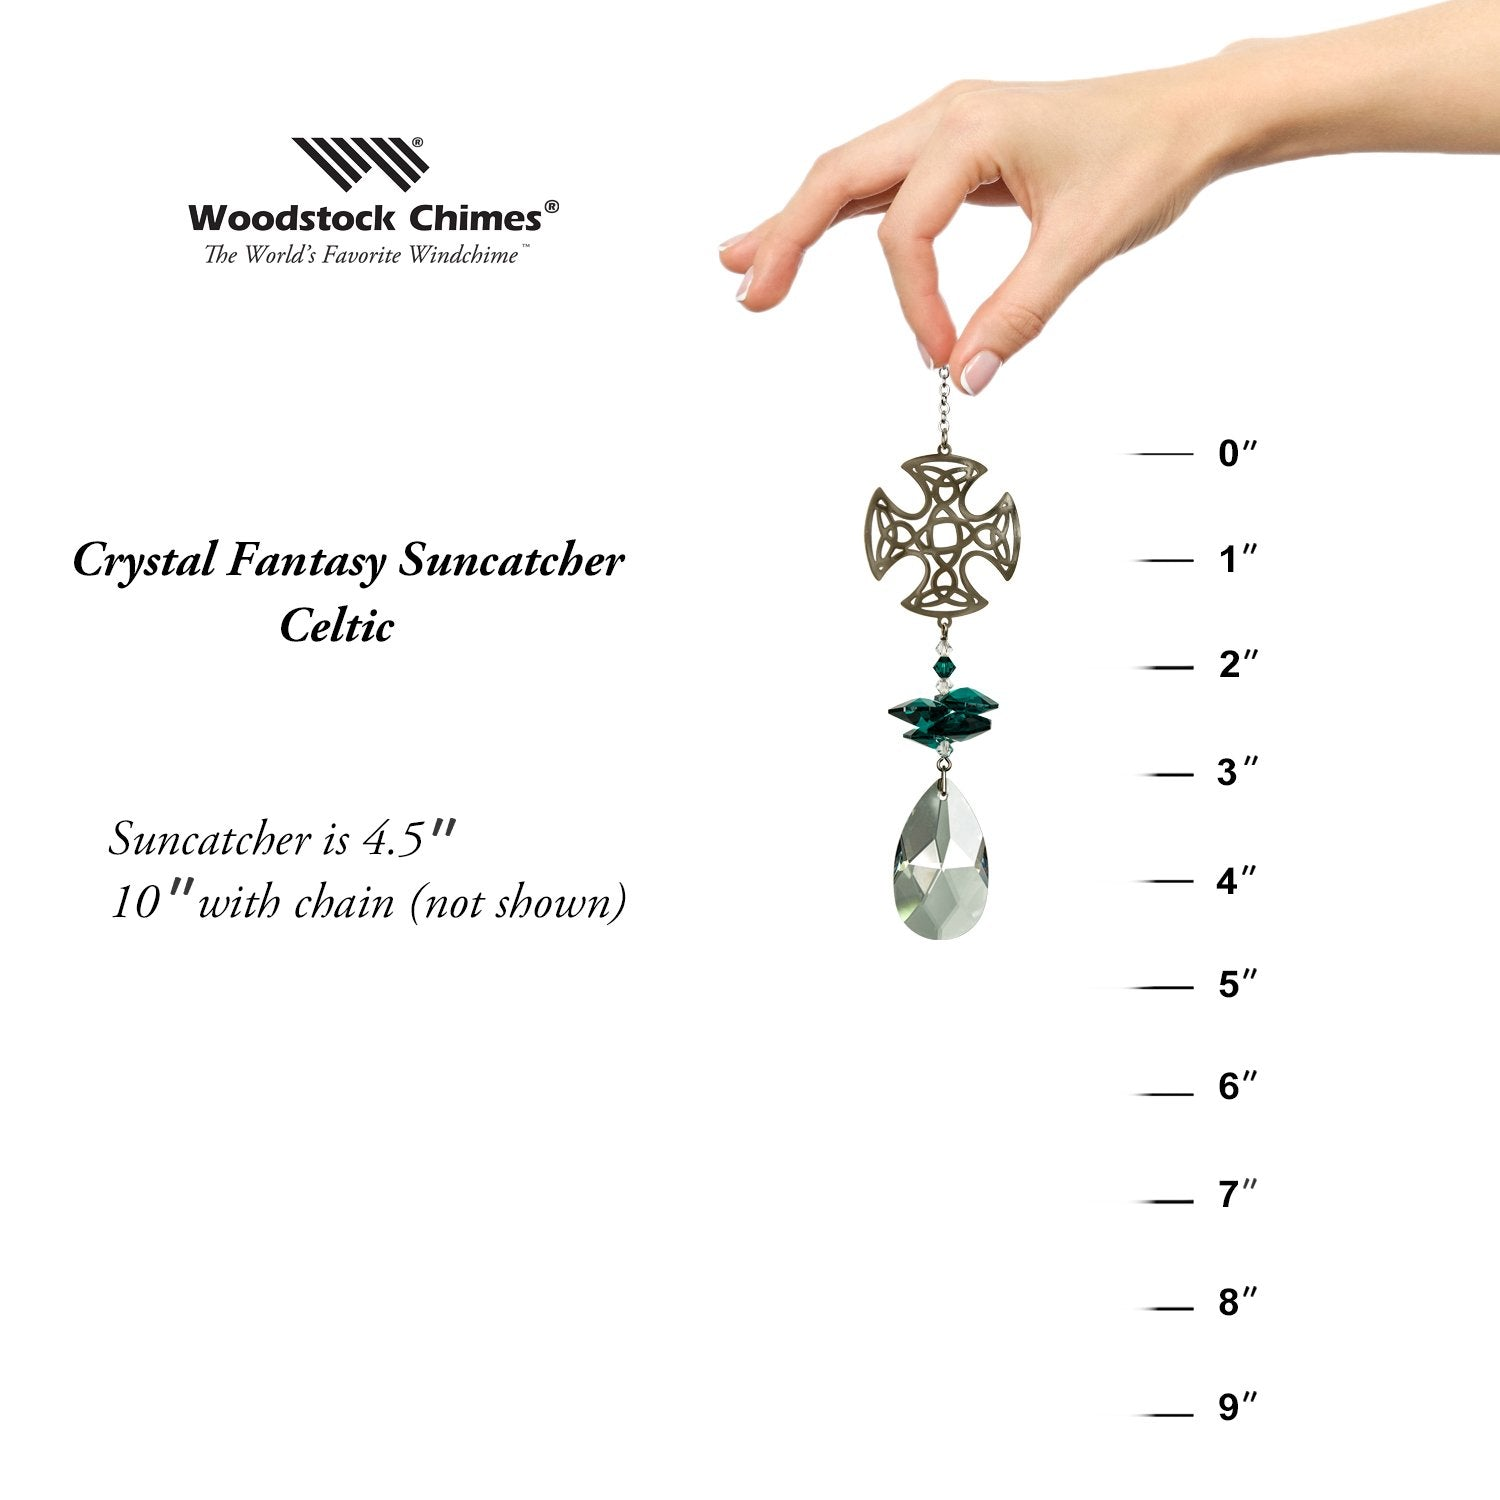 Crystal Fantasy Suncatcher - Celtic proportion image